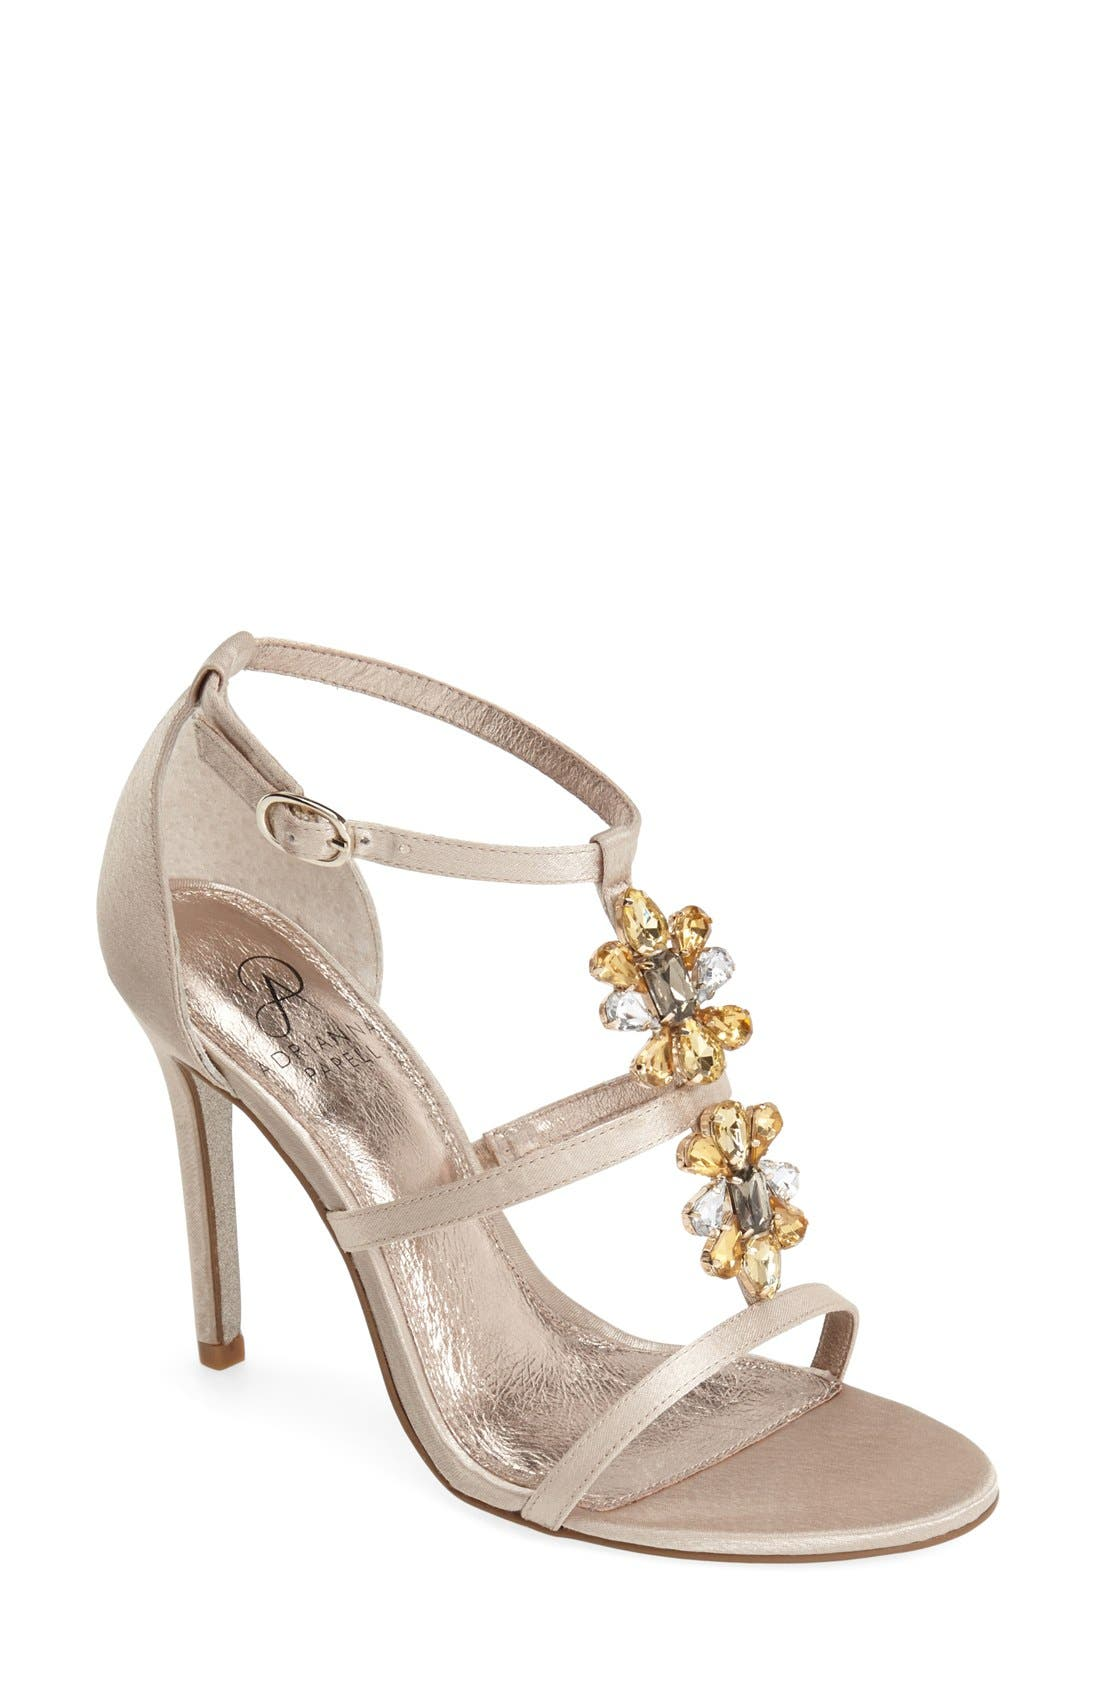 Main Image - Adrianna Papell 'Daphne' Jeweled Strappy Sandal (Women)